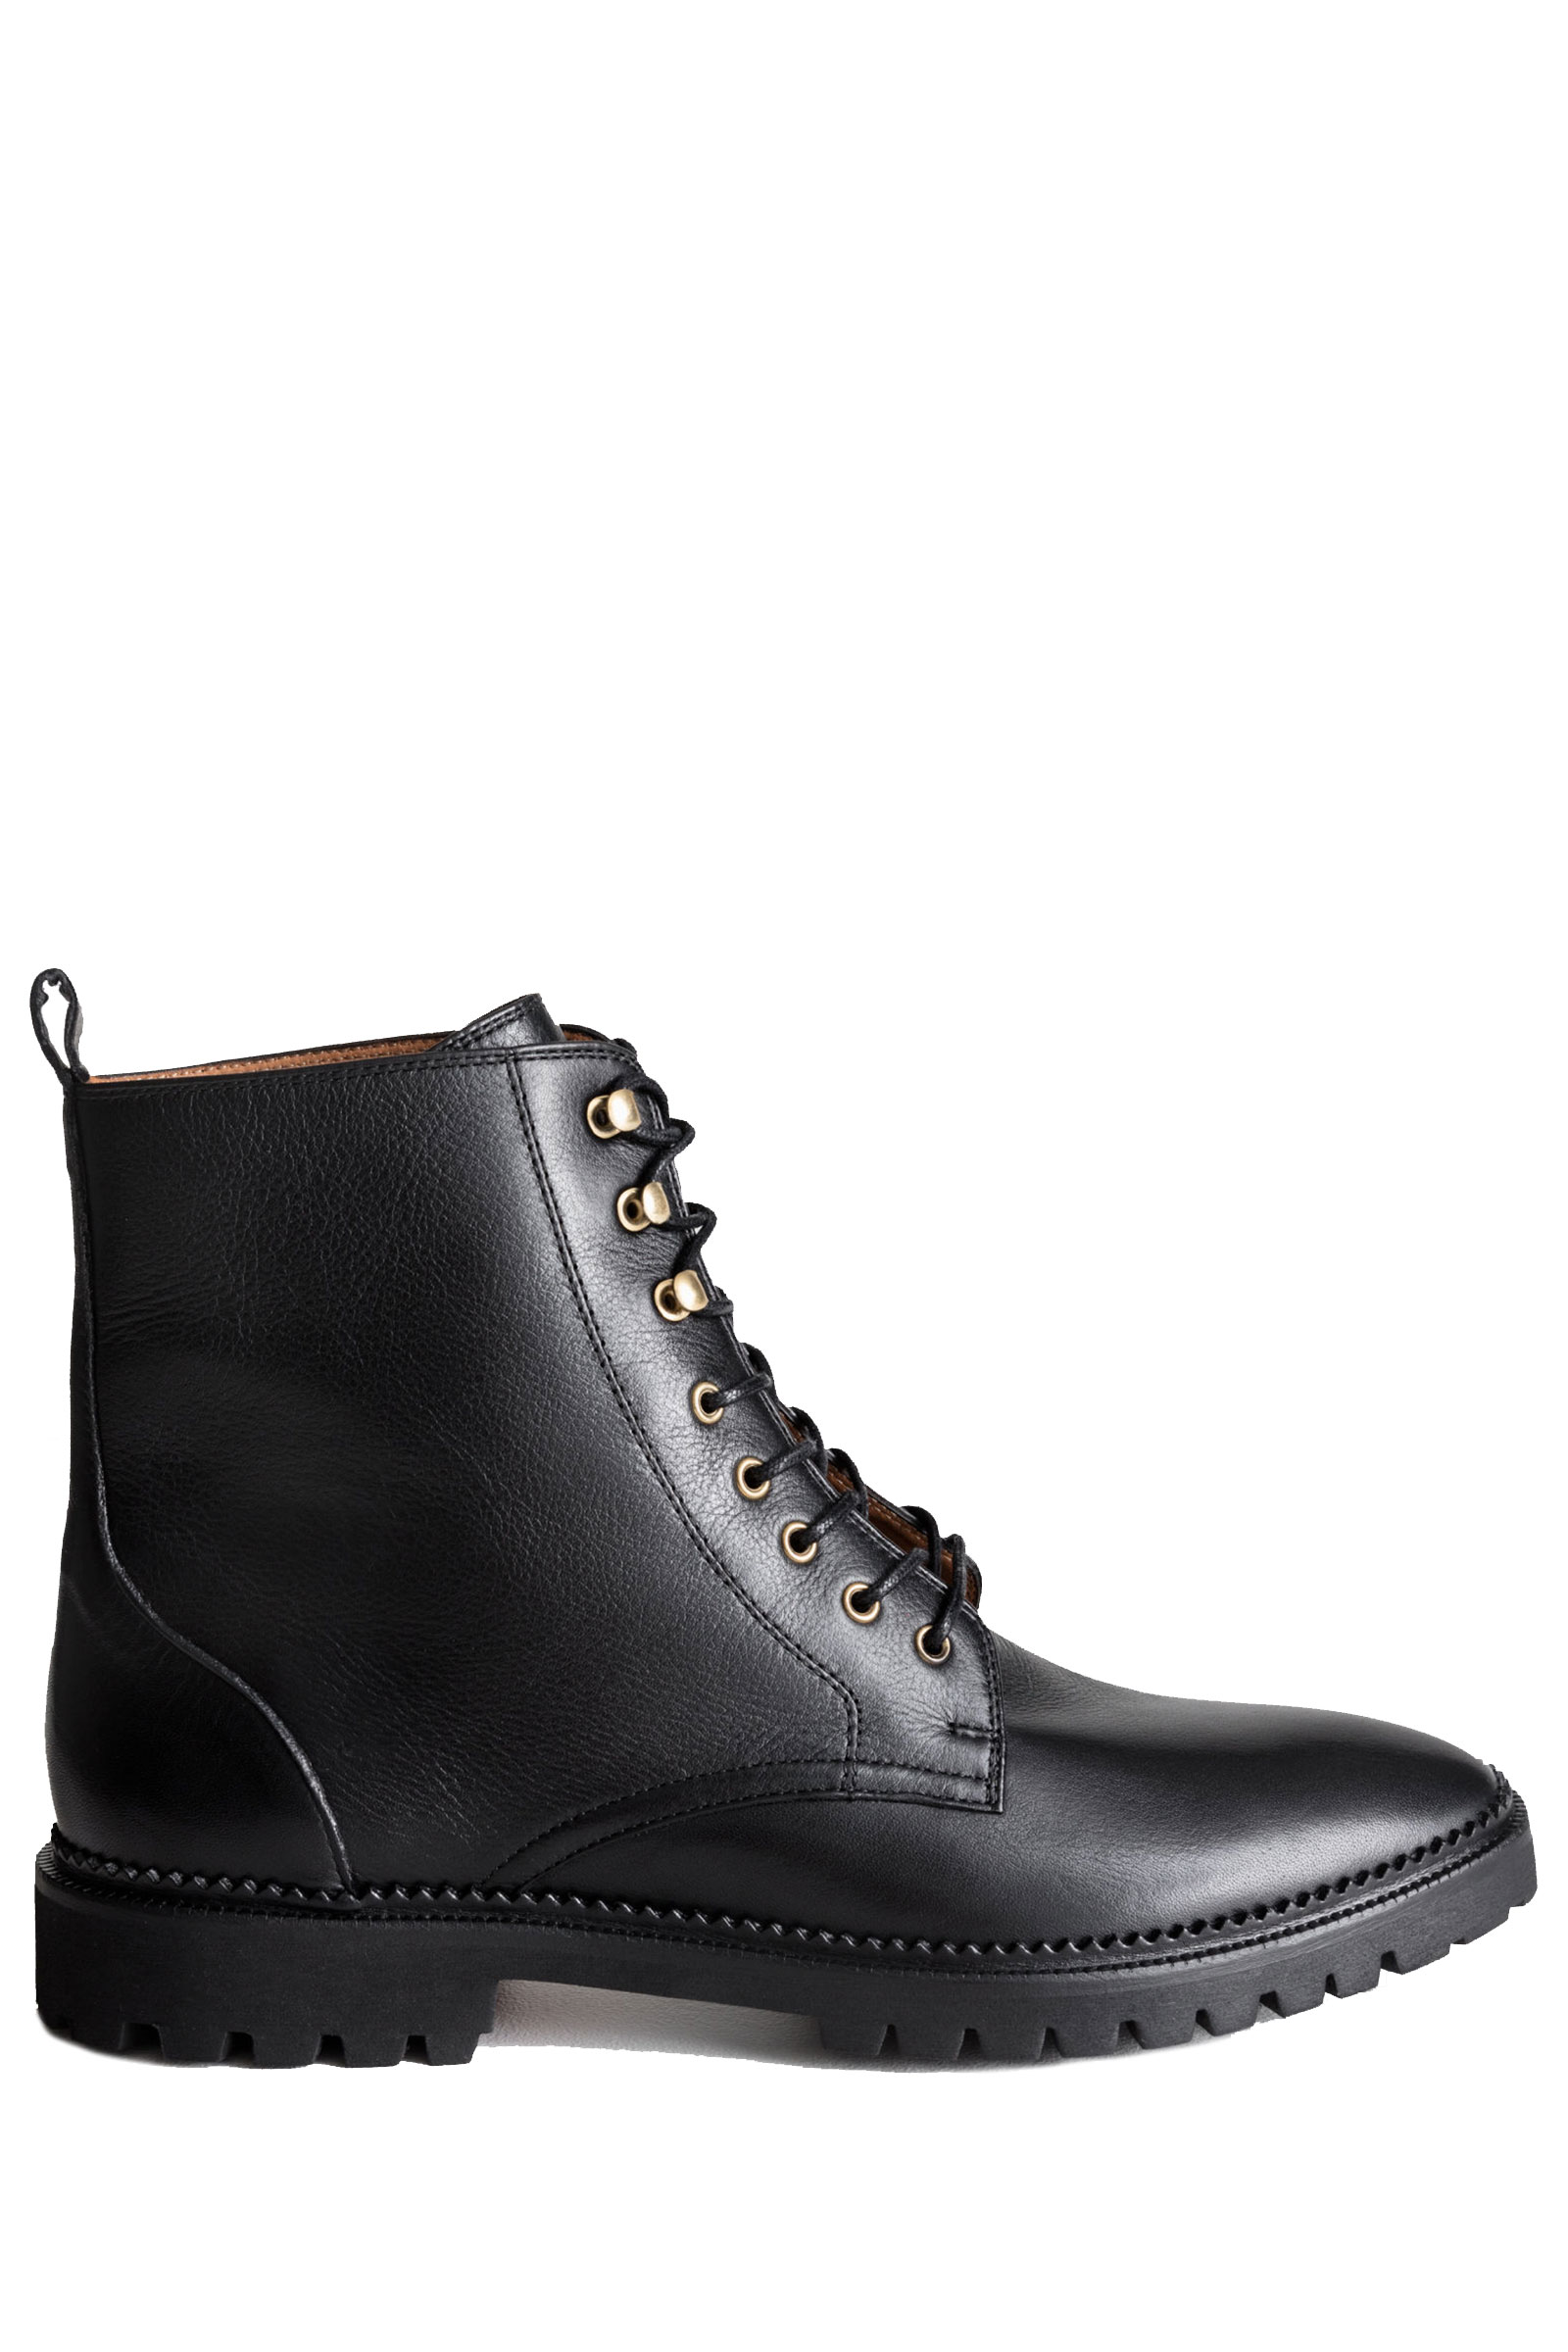 Other Stories Lace-Up Leather Boots